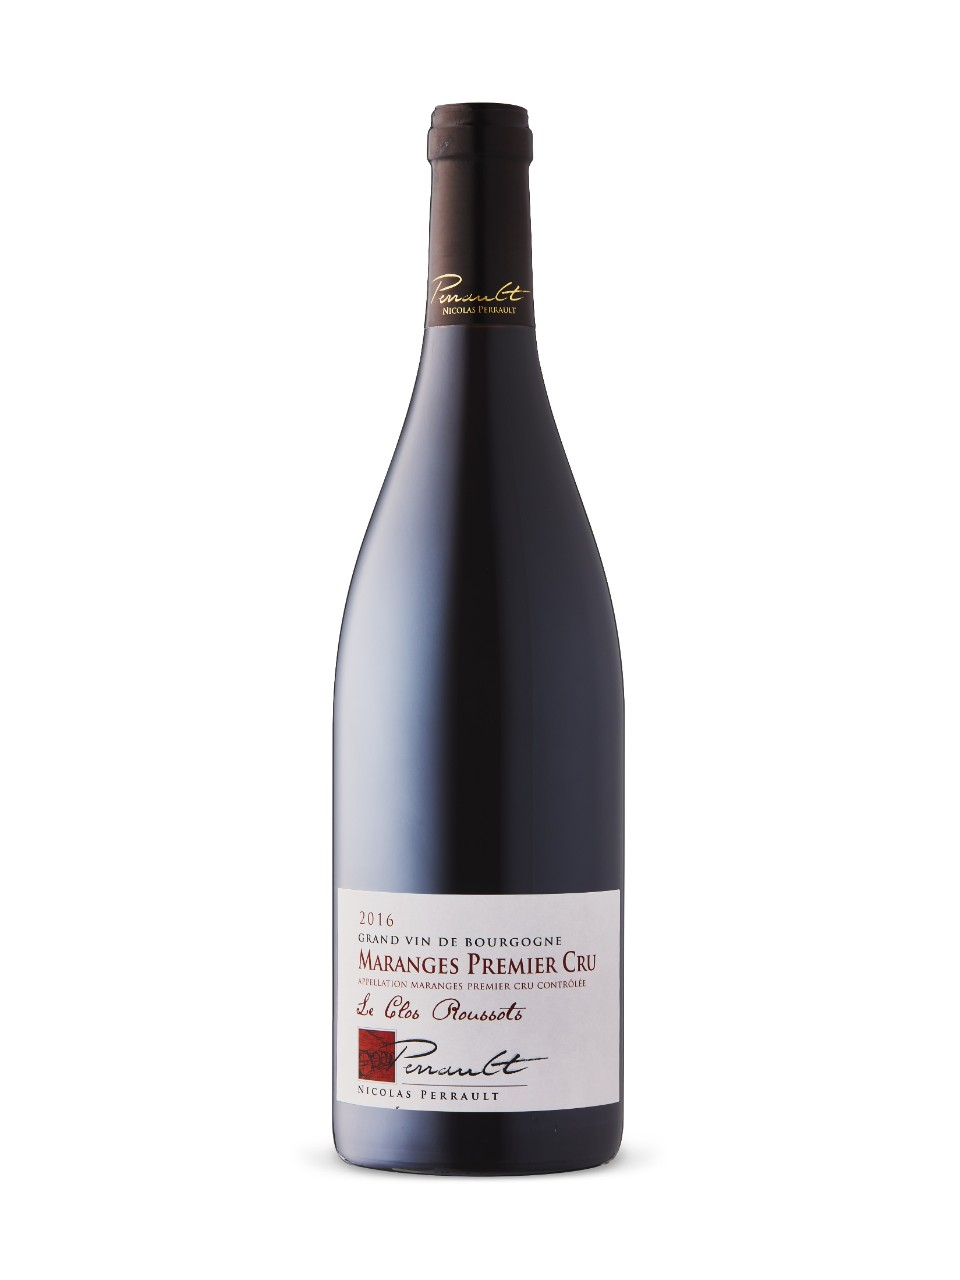 N Perrault Maranges 1er cru Rousso Organic 2016 from LCBO